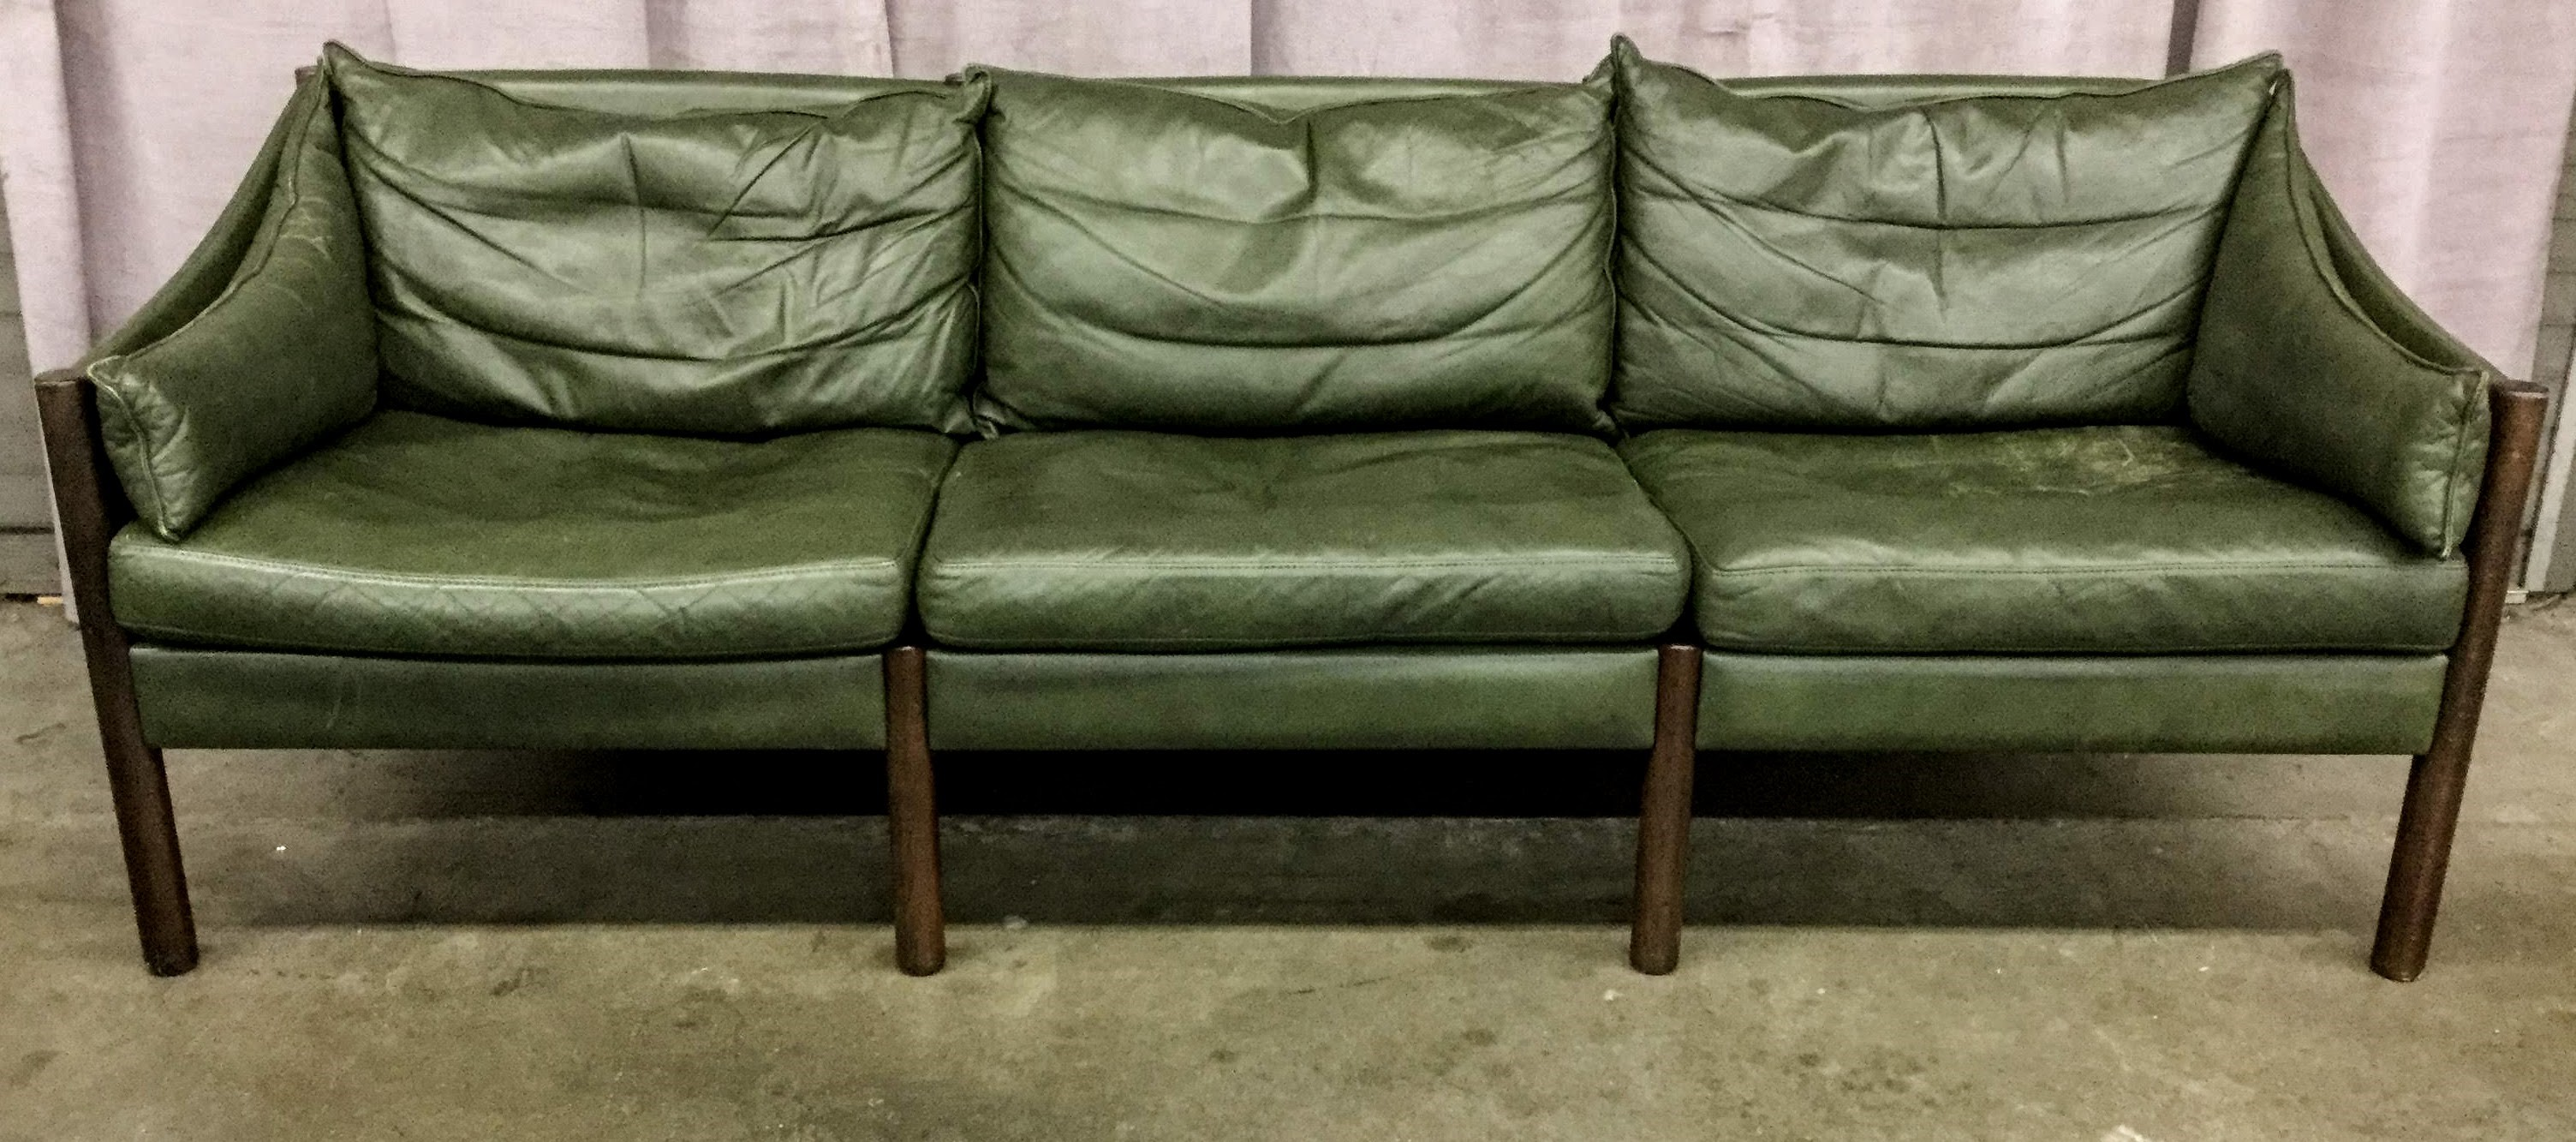 Sofa, Danish Modern, Vintage Green Leather With Round Walnut ...